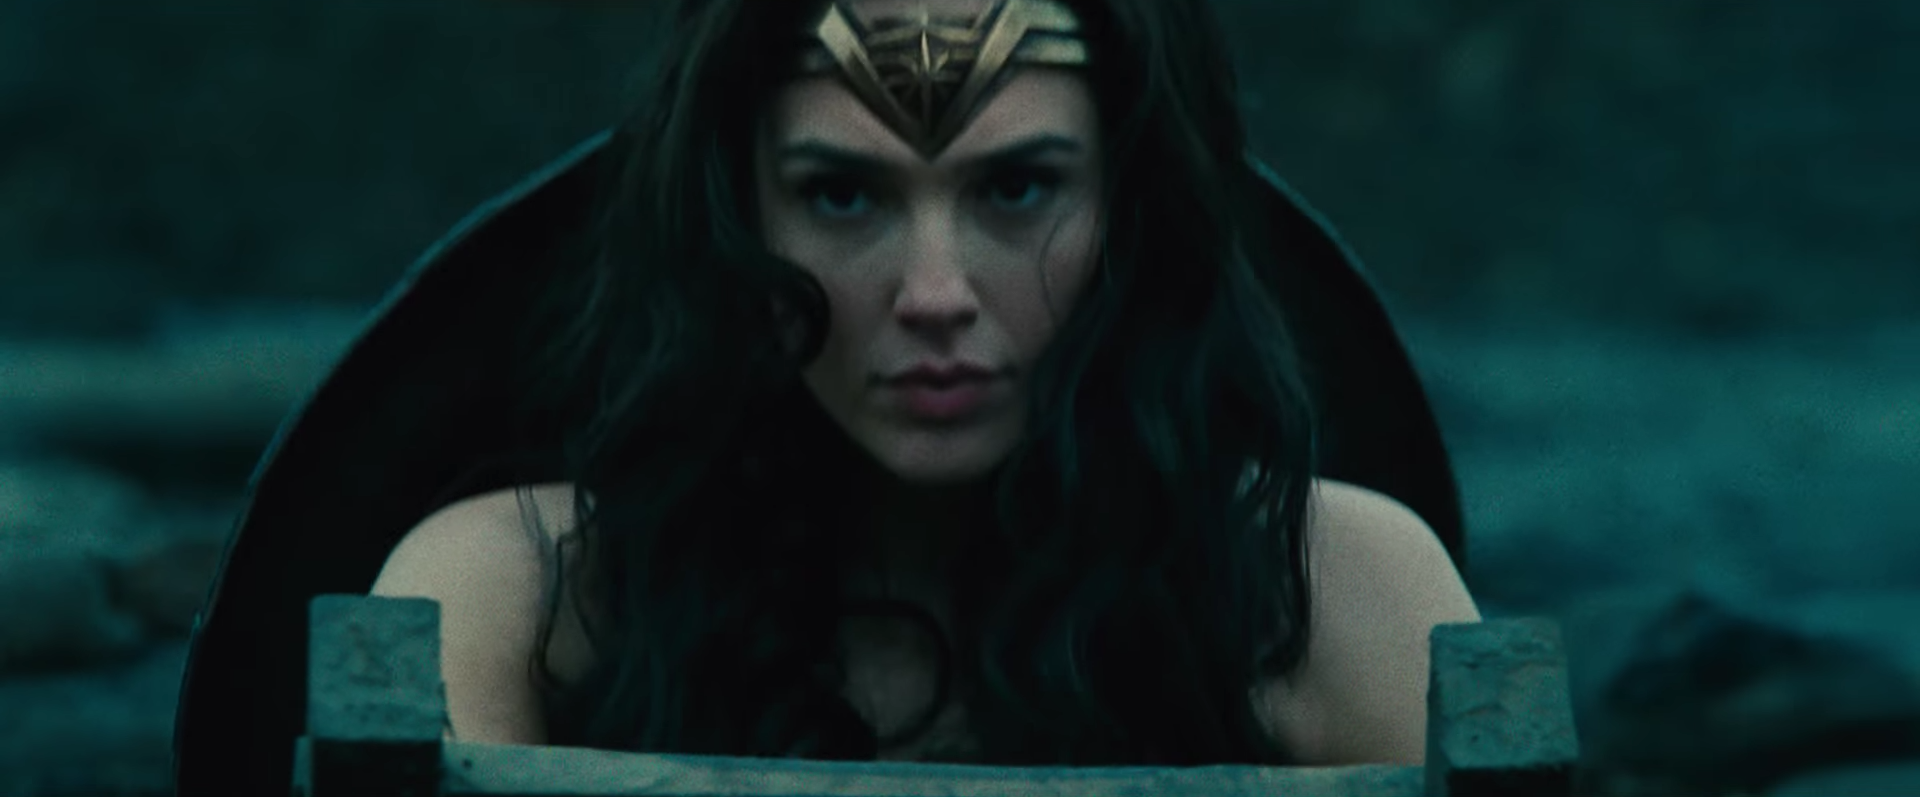 Trailer for WONDER WOMAN Starring Gal Gadot (With HD ...